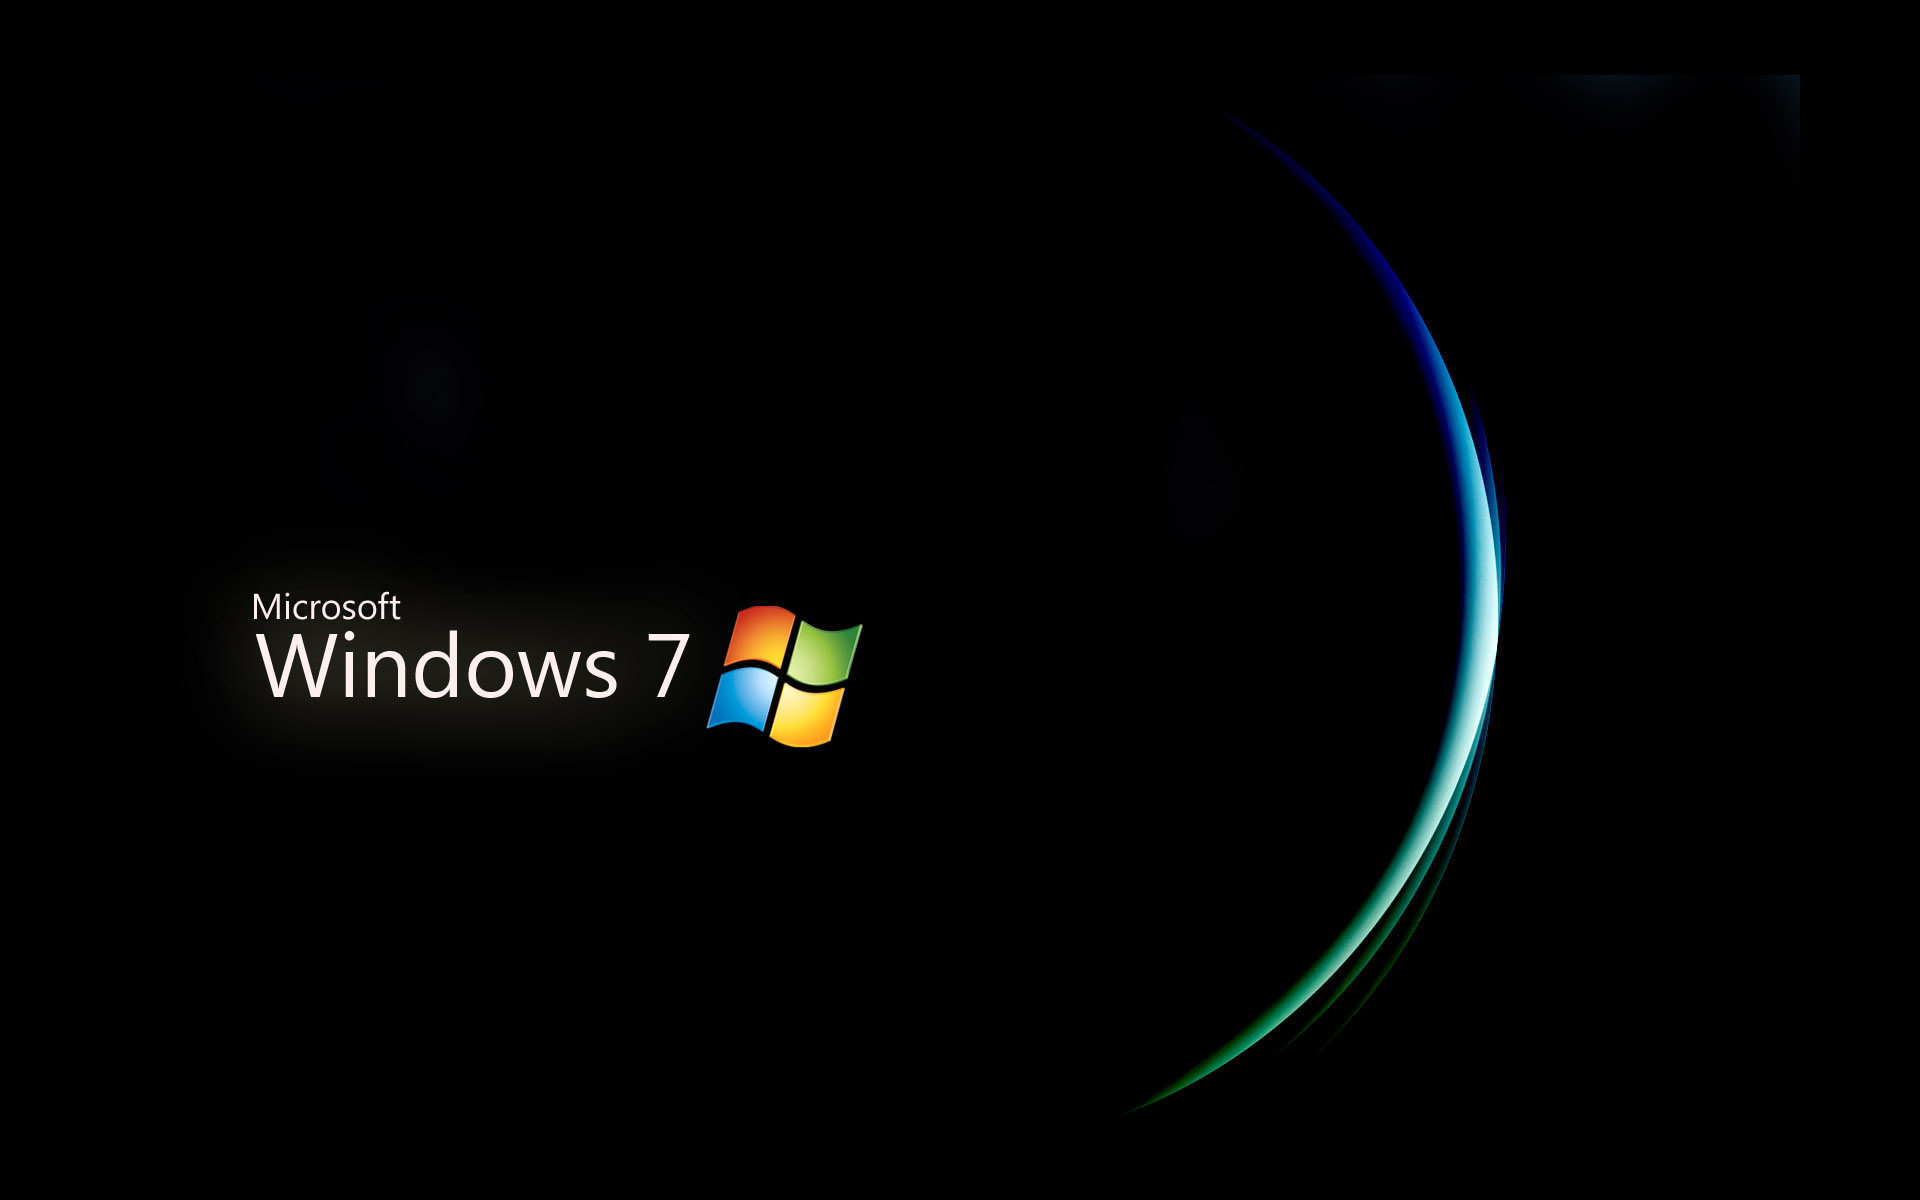 Windows 7 Wallpapers Backgrounds Hd 04